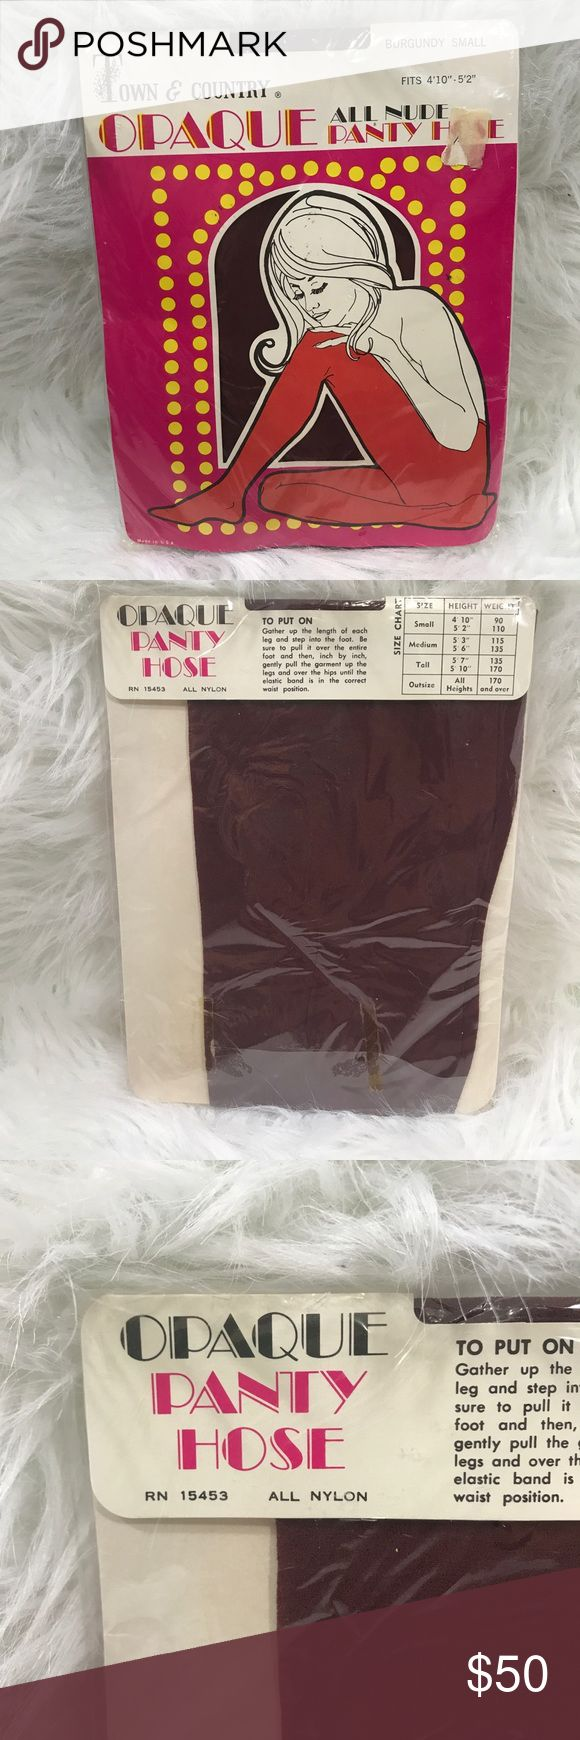 VTG TOWN AND COUNTRY OPAQUE BURGUNDY PANTYHOSE Brand new vintage town and country pantyhose size small. Great for Halloween, a collector or a prop! town and country Intimates & Sleepwear